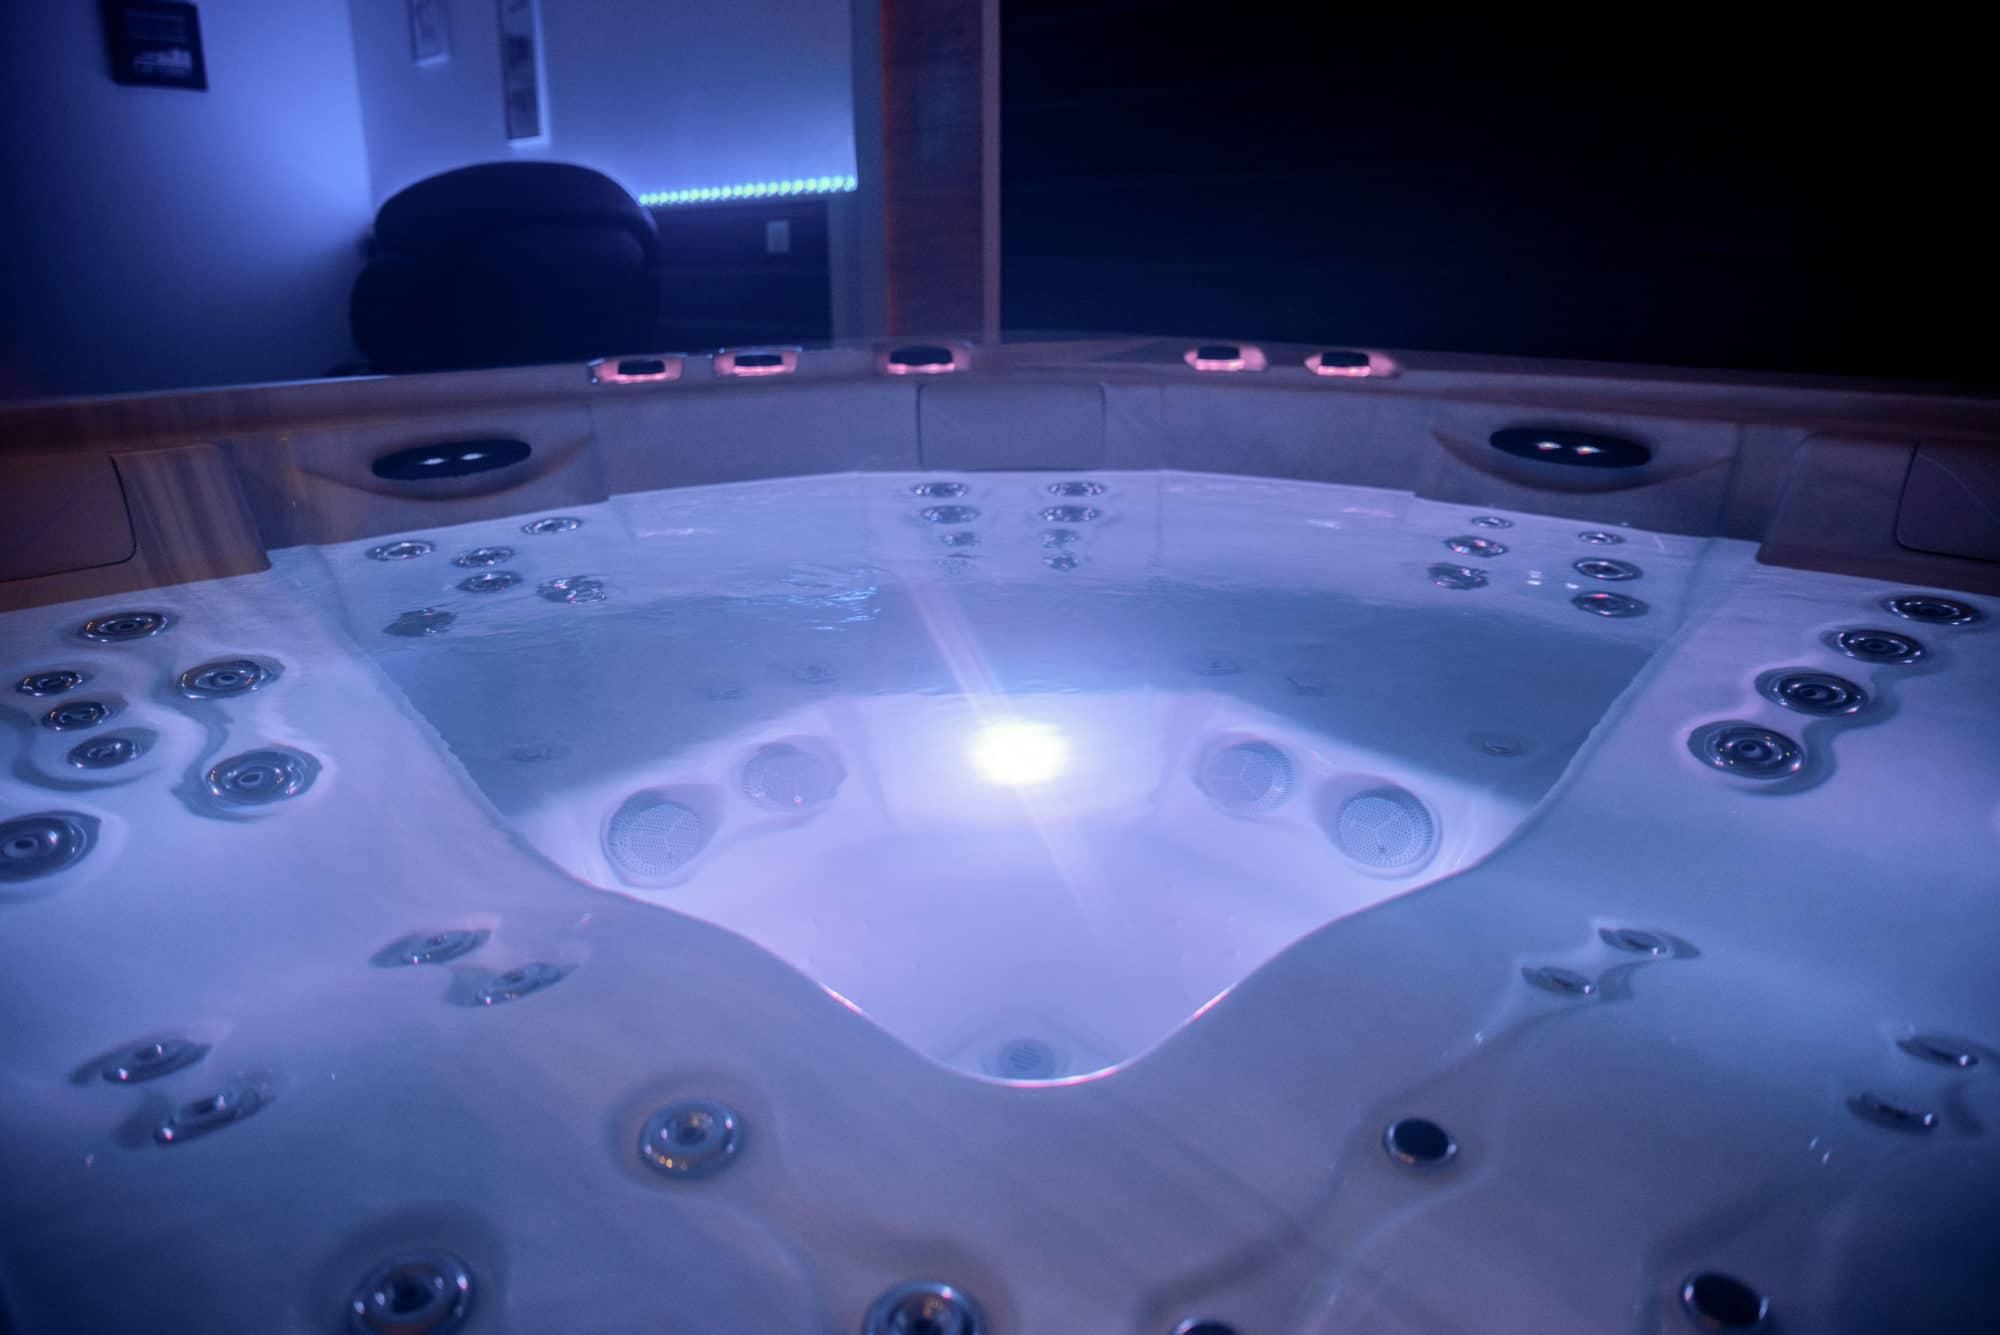 Spa hammam jacuzzi privatif bassin le teich